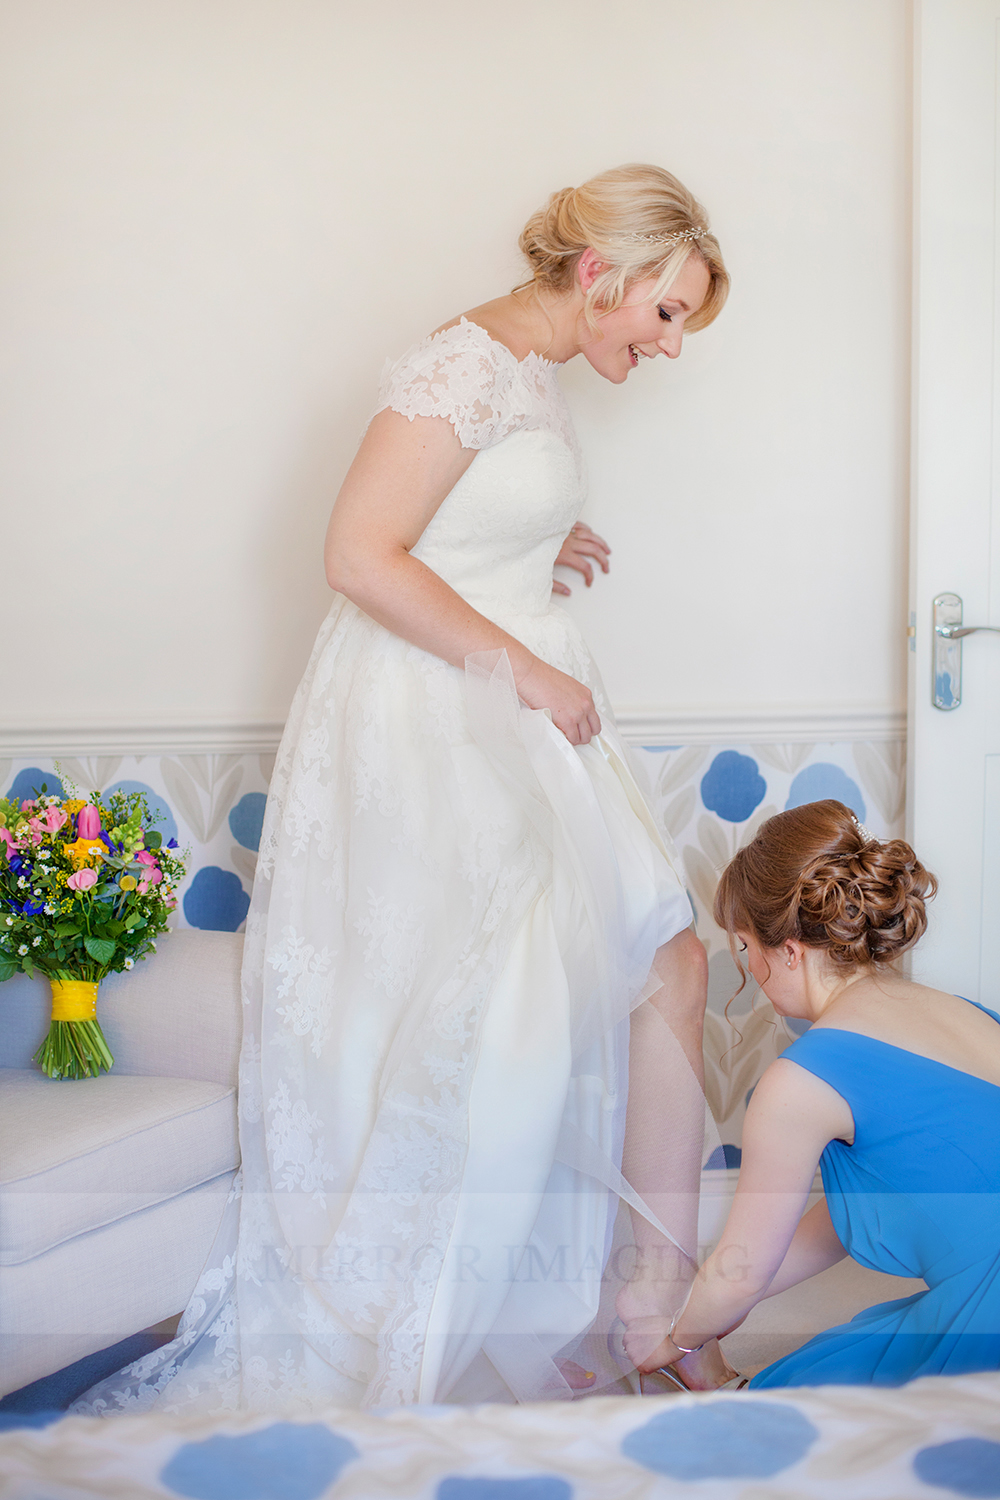 notts wedding photographer 7.jpg